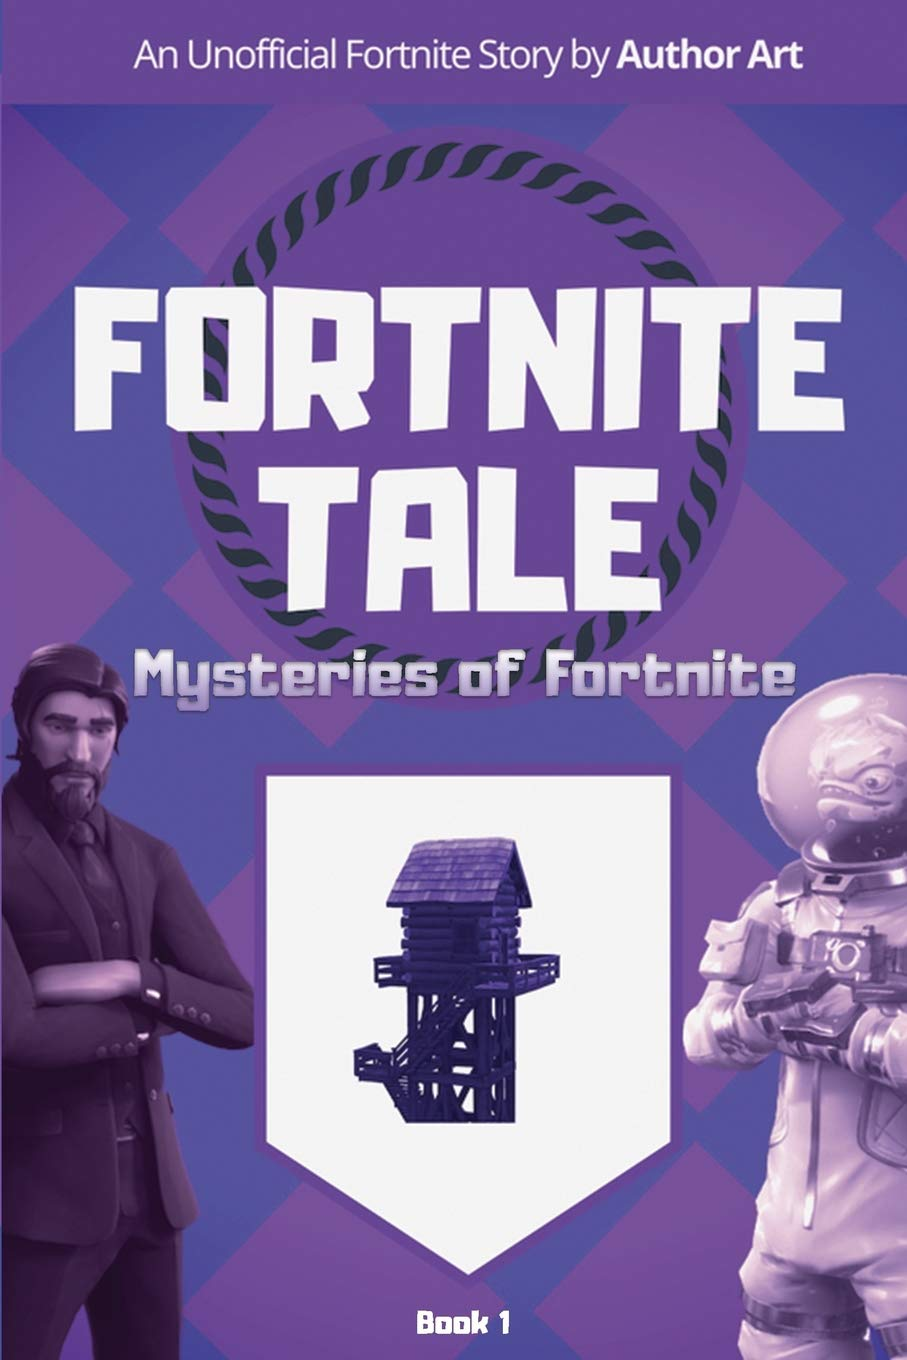 Fortnite Tale: Mysteries of Fortnite by Independently published